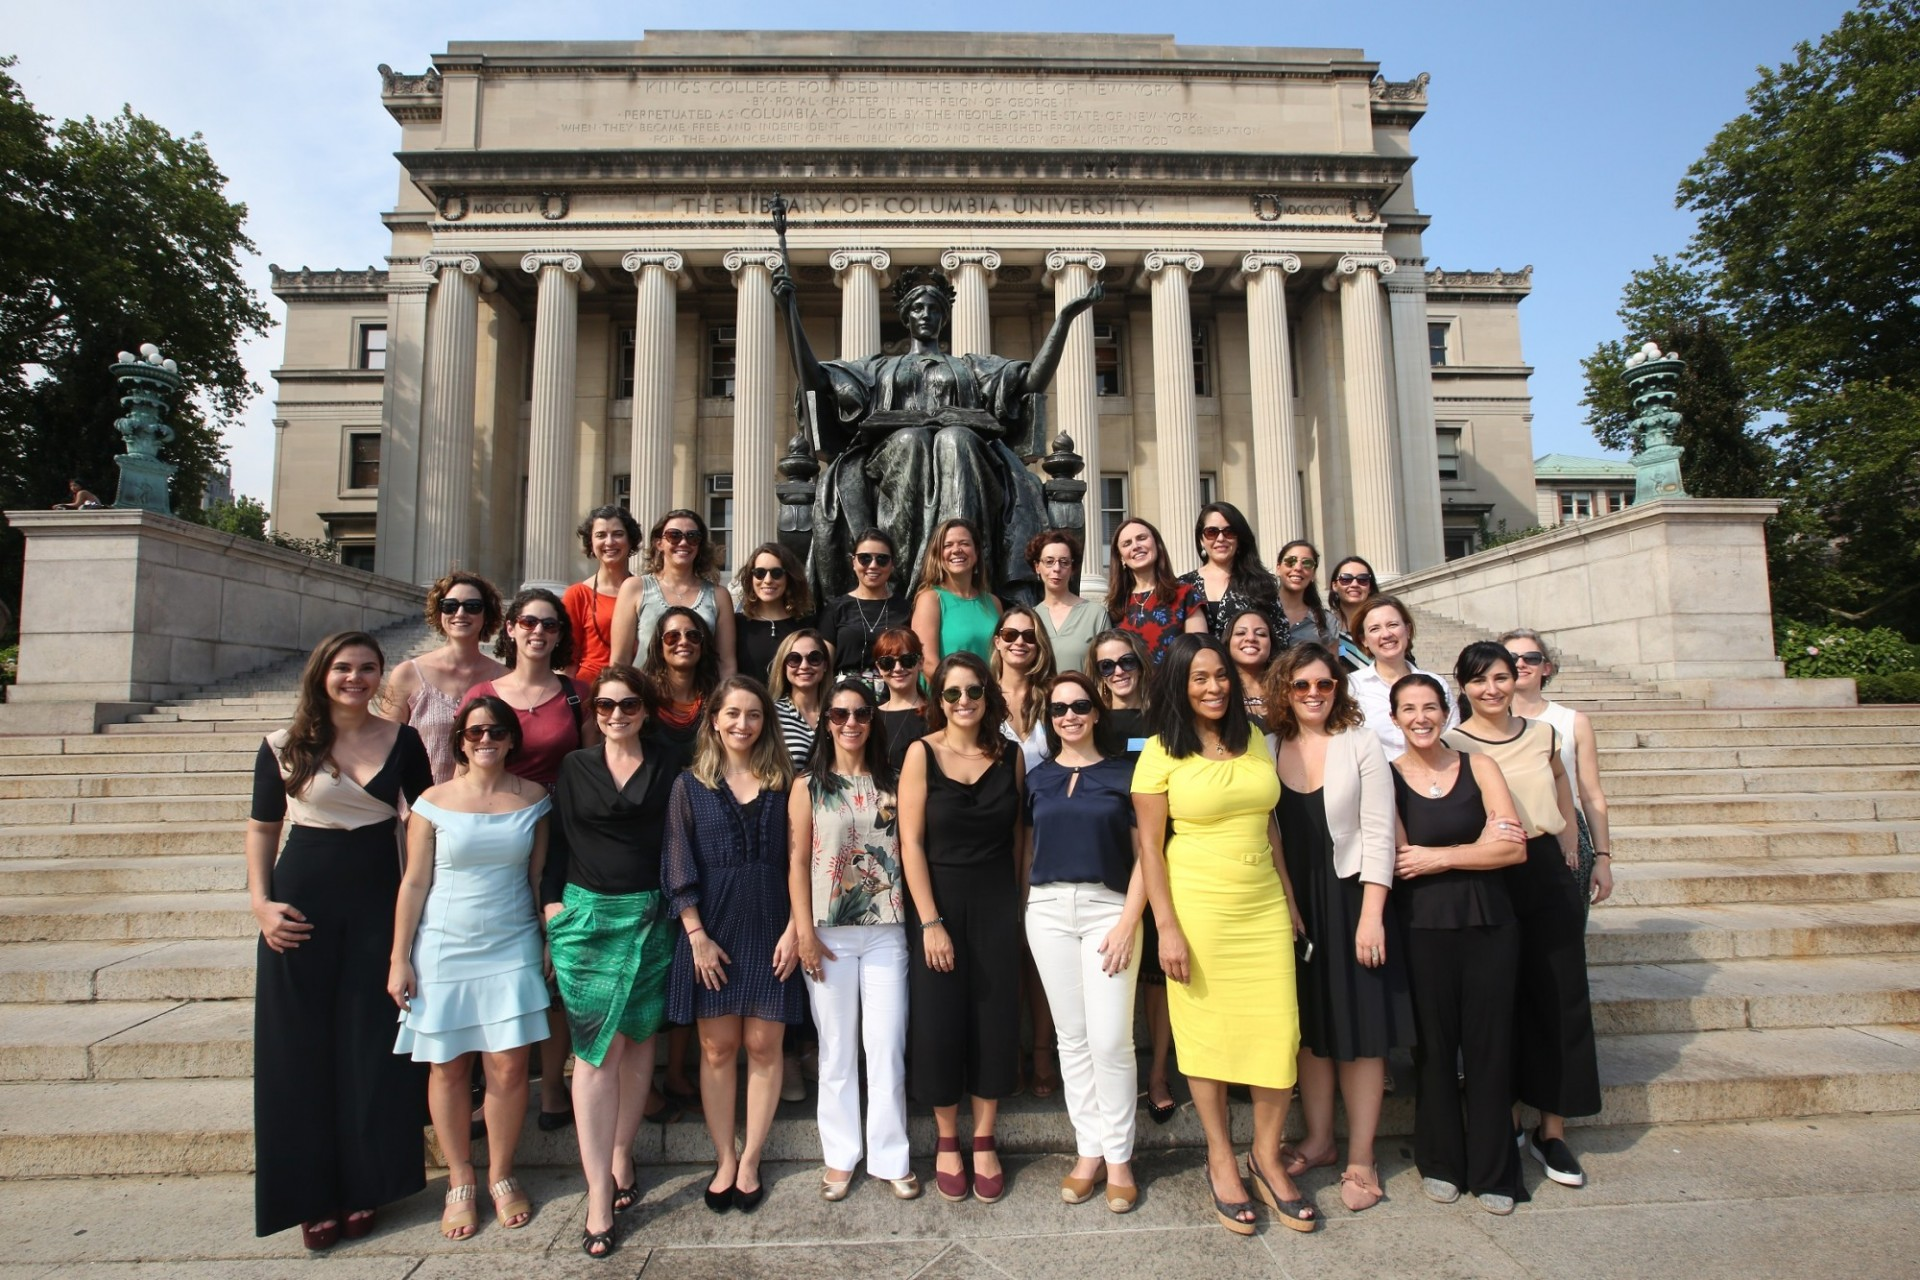 Participants of the Columbia Women's Leadership program in NY